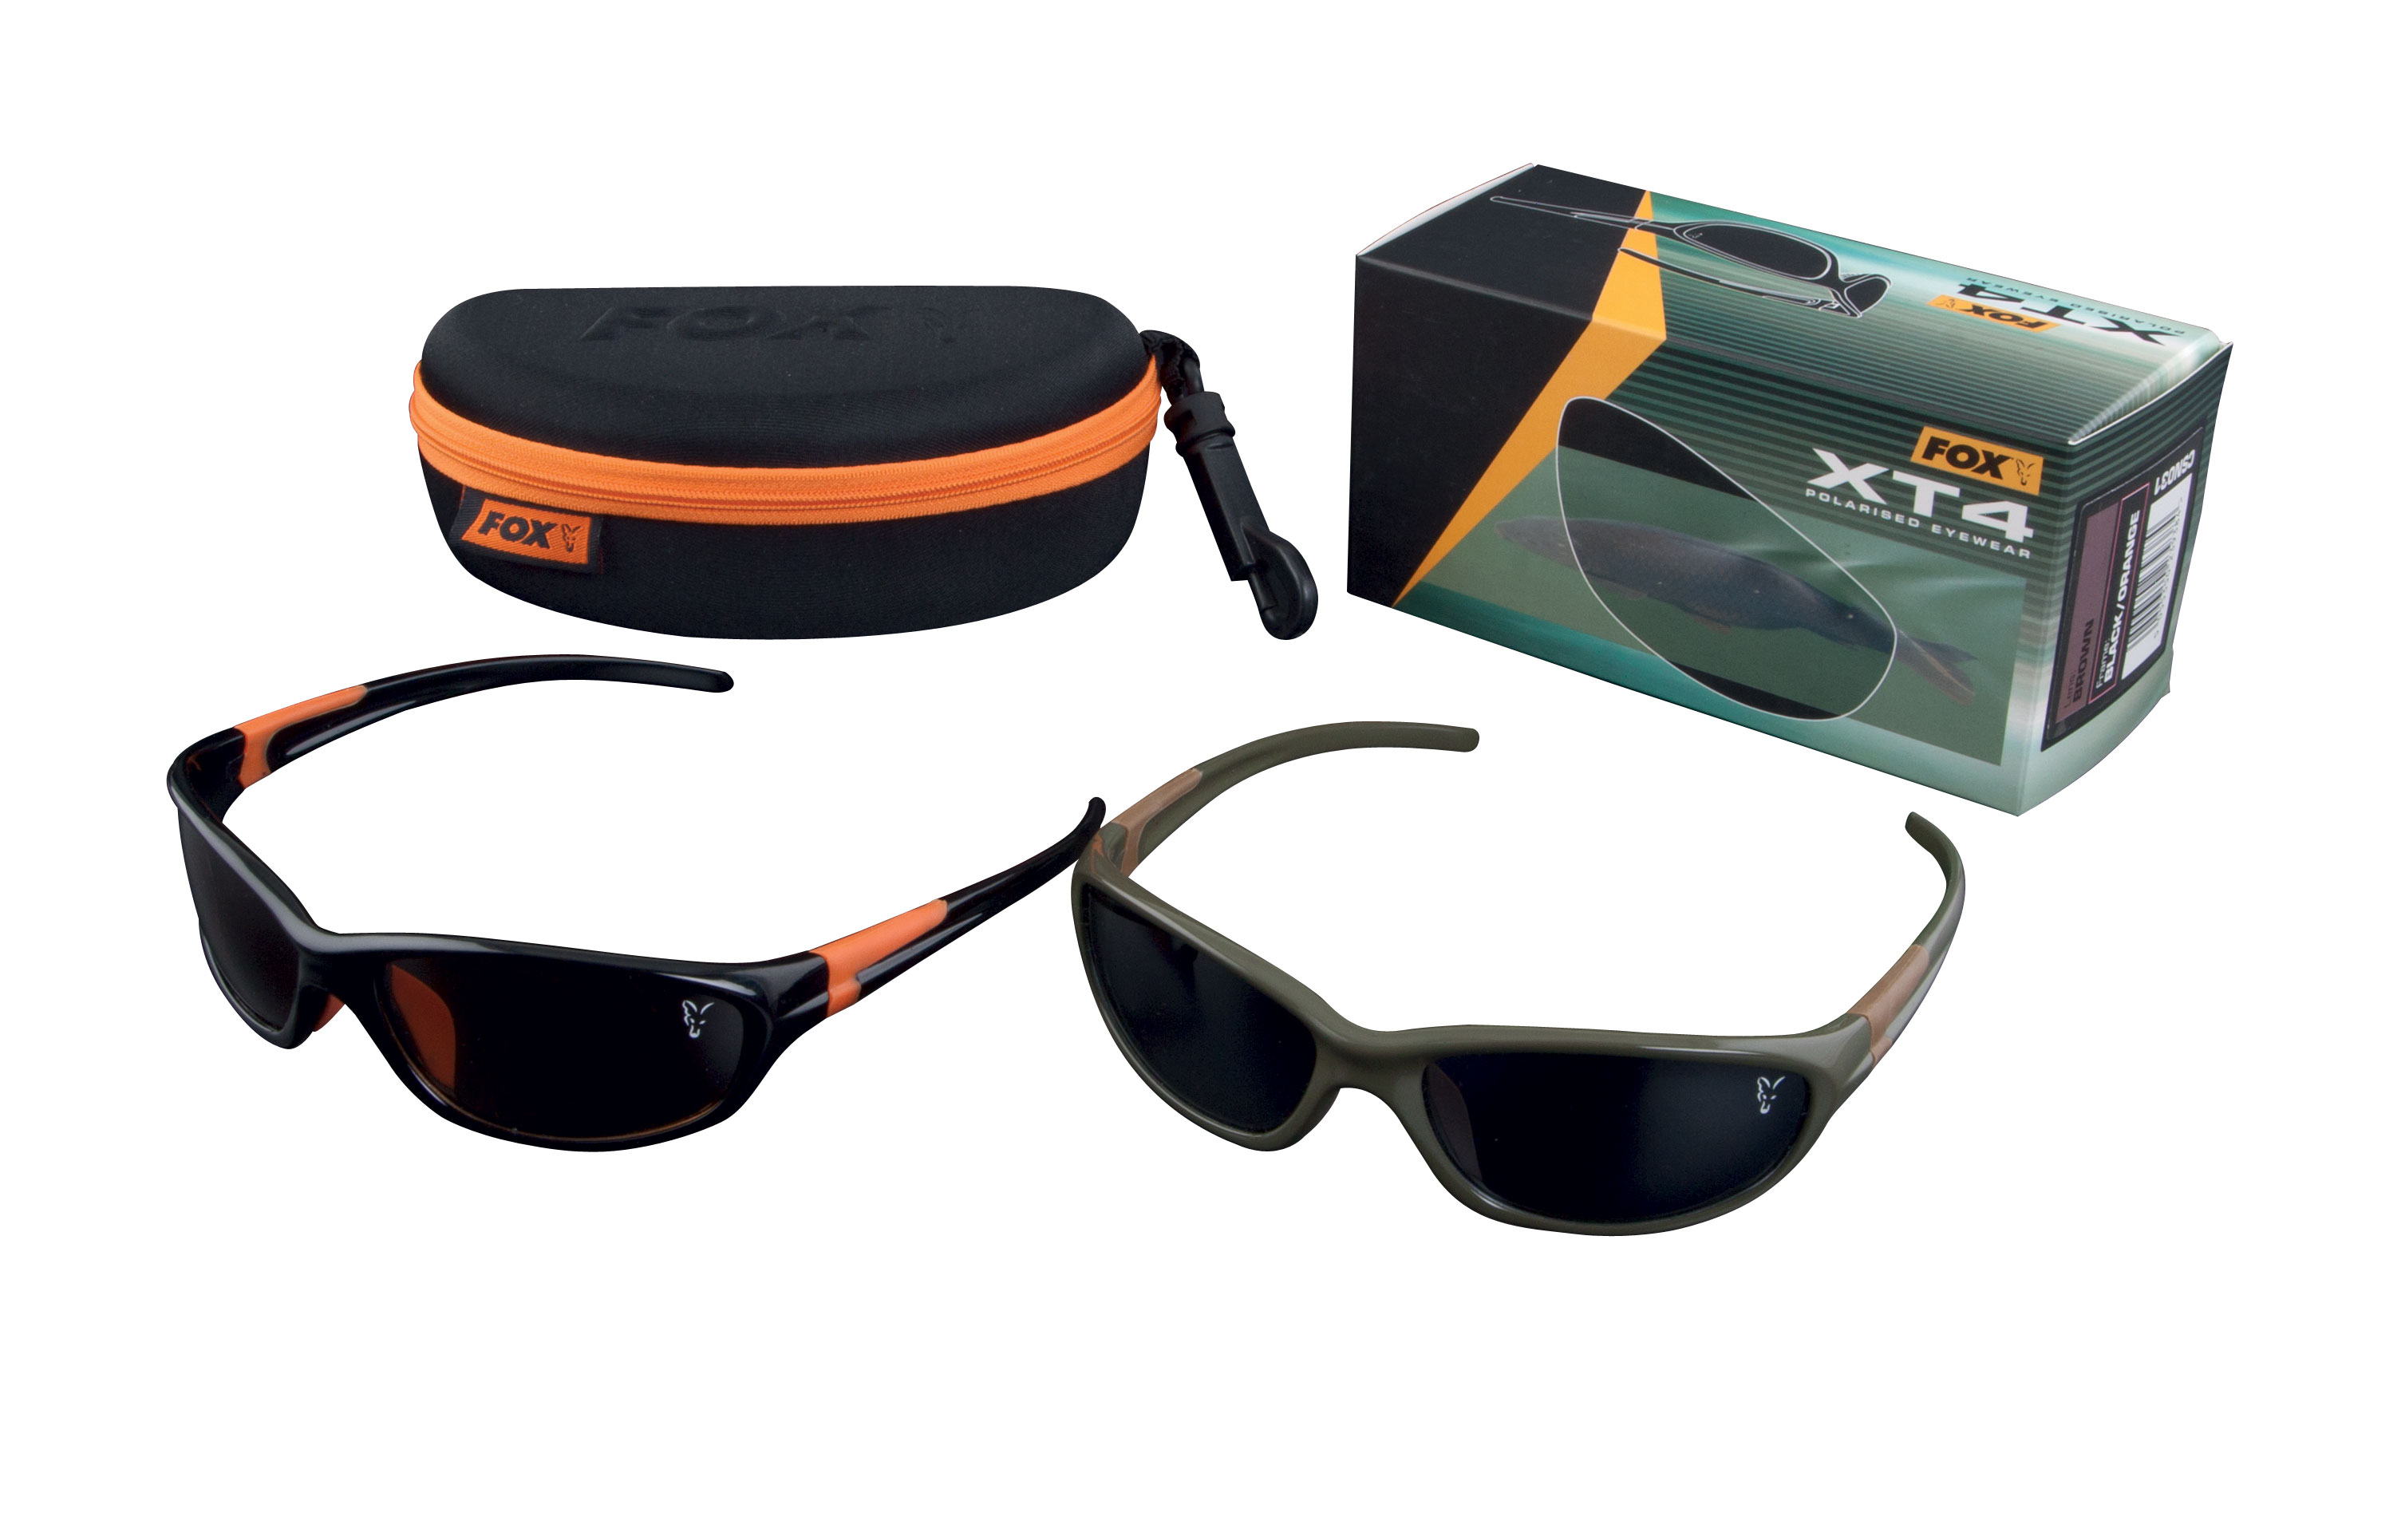 Fox XT4 Sunglasses - TOP die neuen Fox XT4 Polbrillen